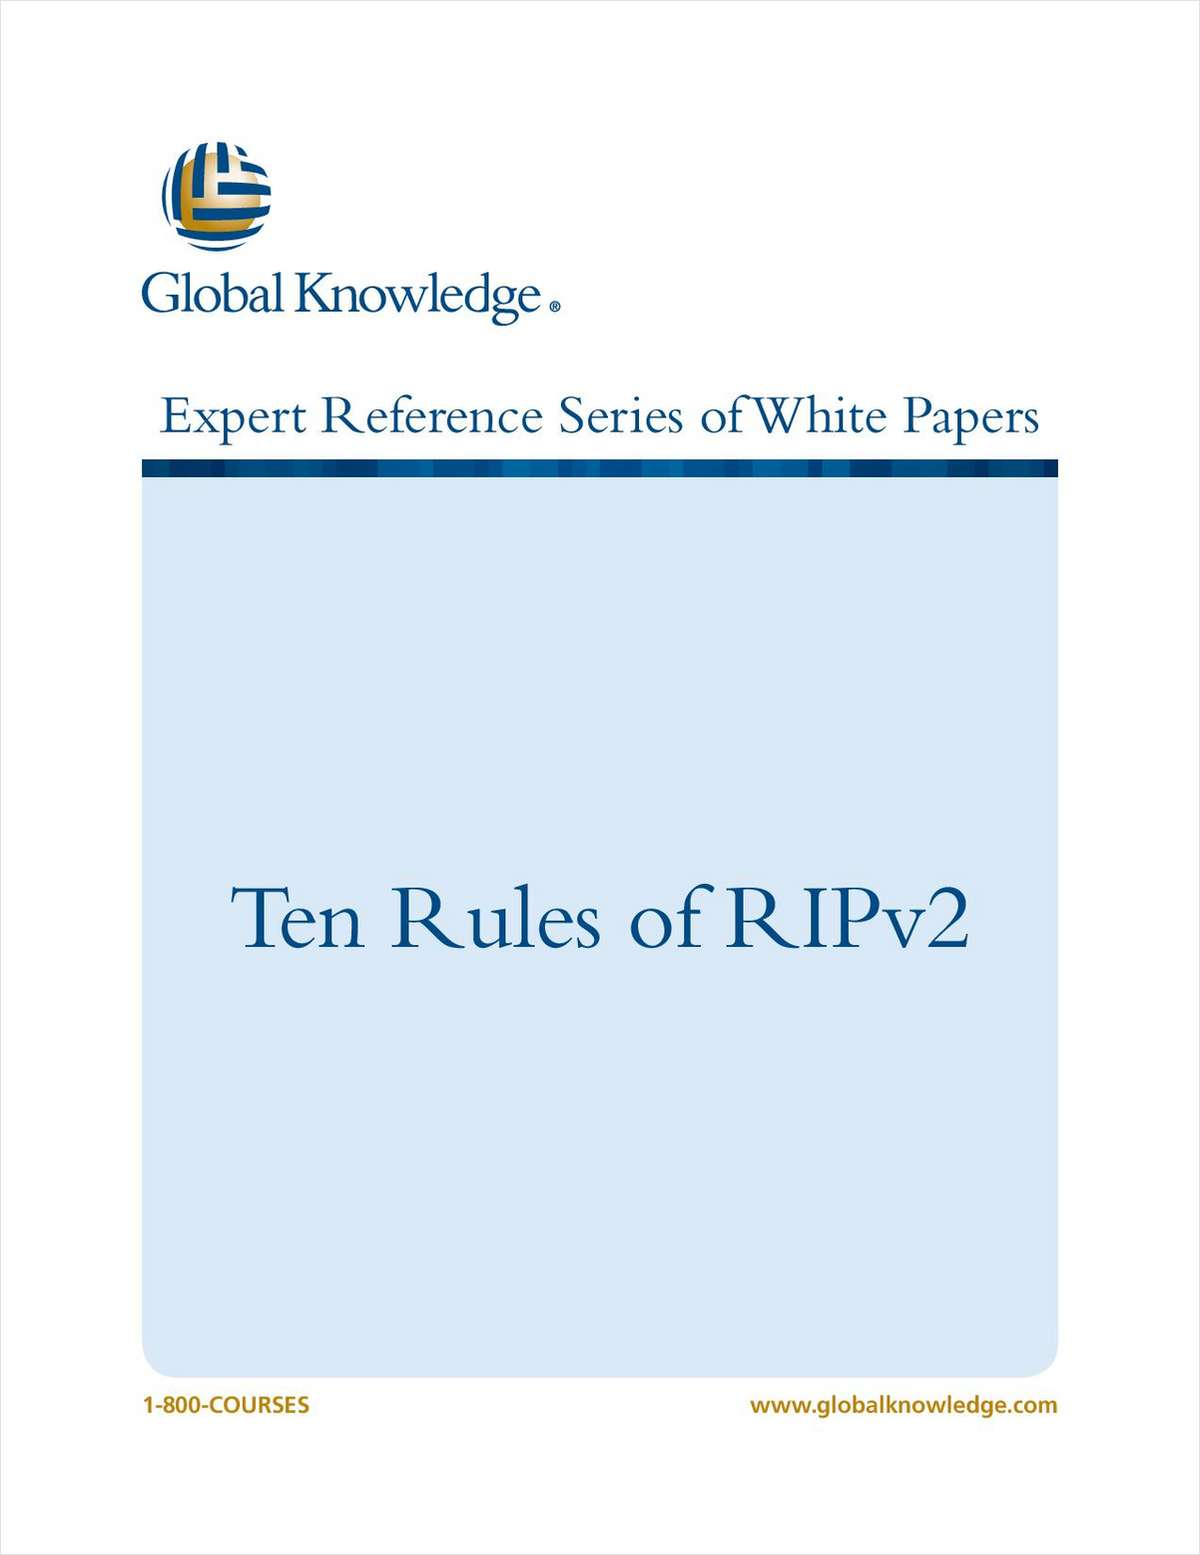 Ten Rules of RIPv2